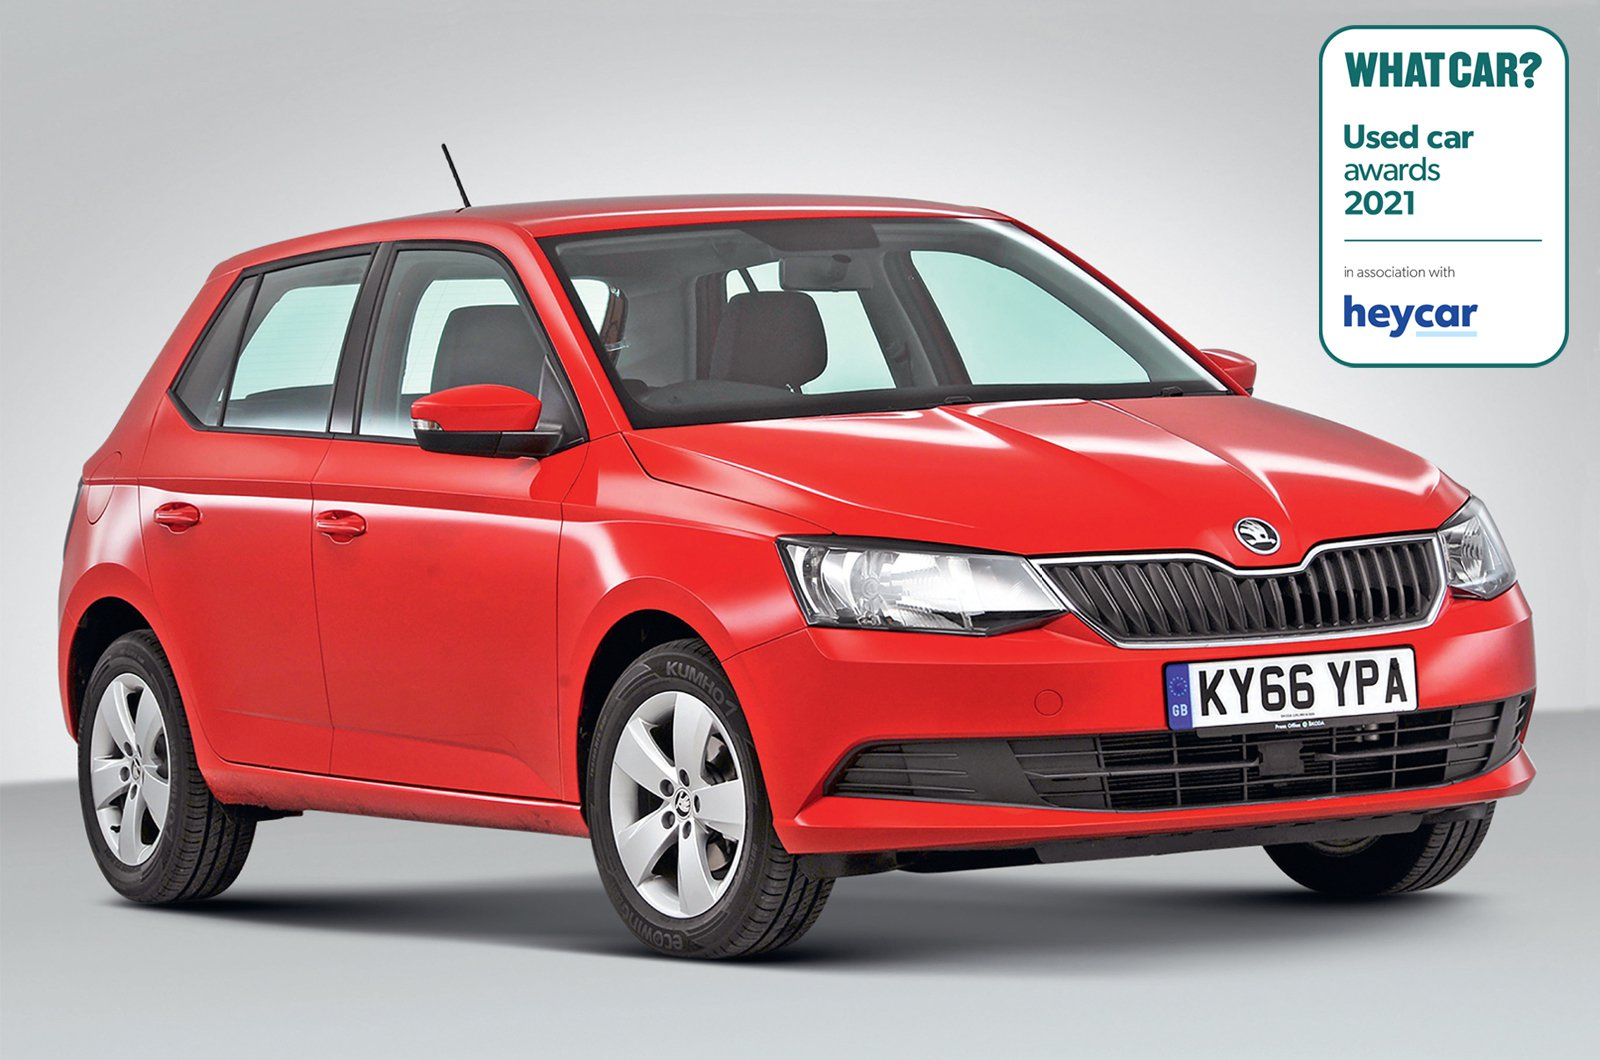 Used Car Awards 2021 - Skoda Fabia